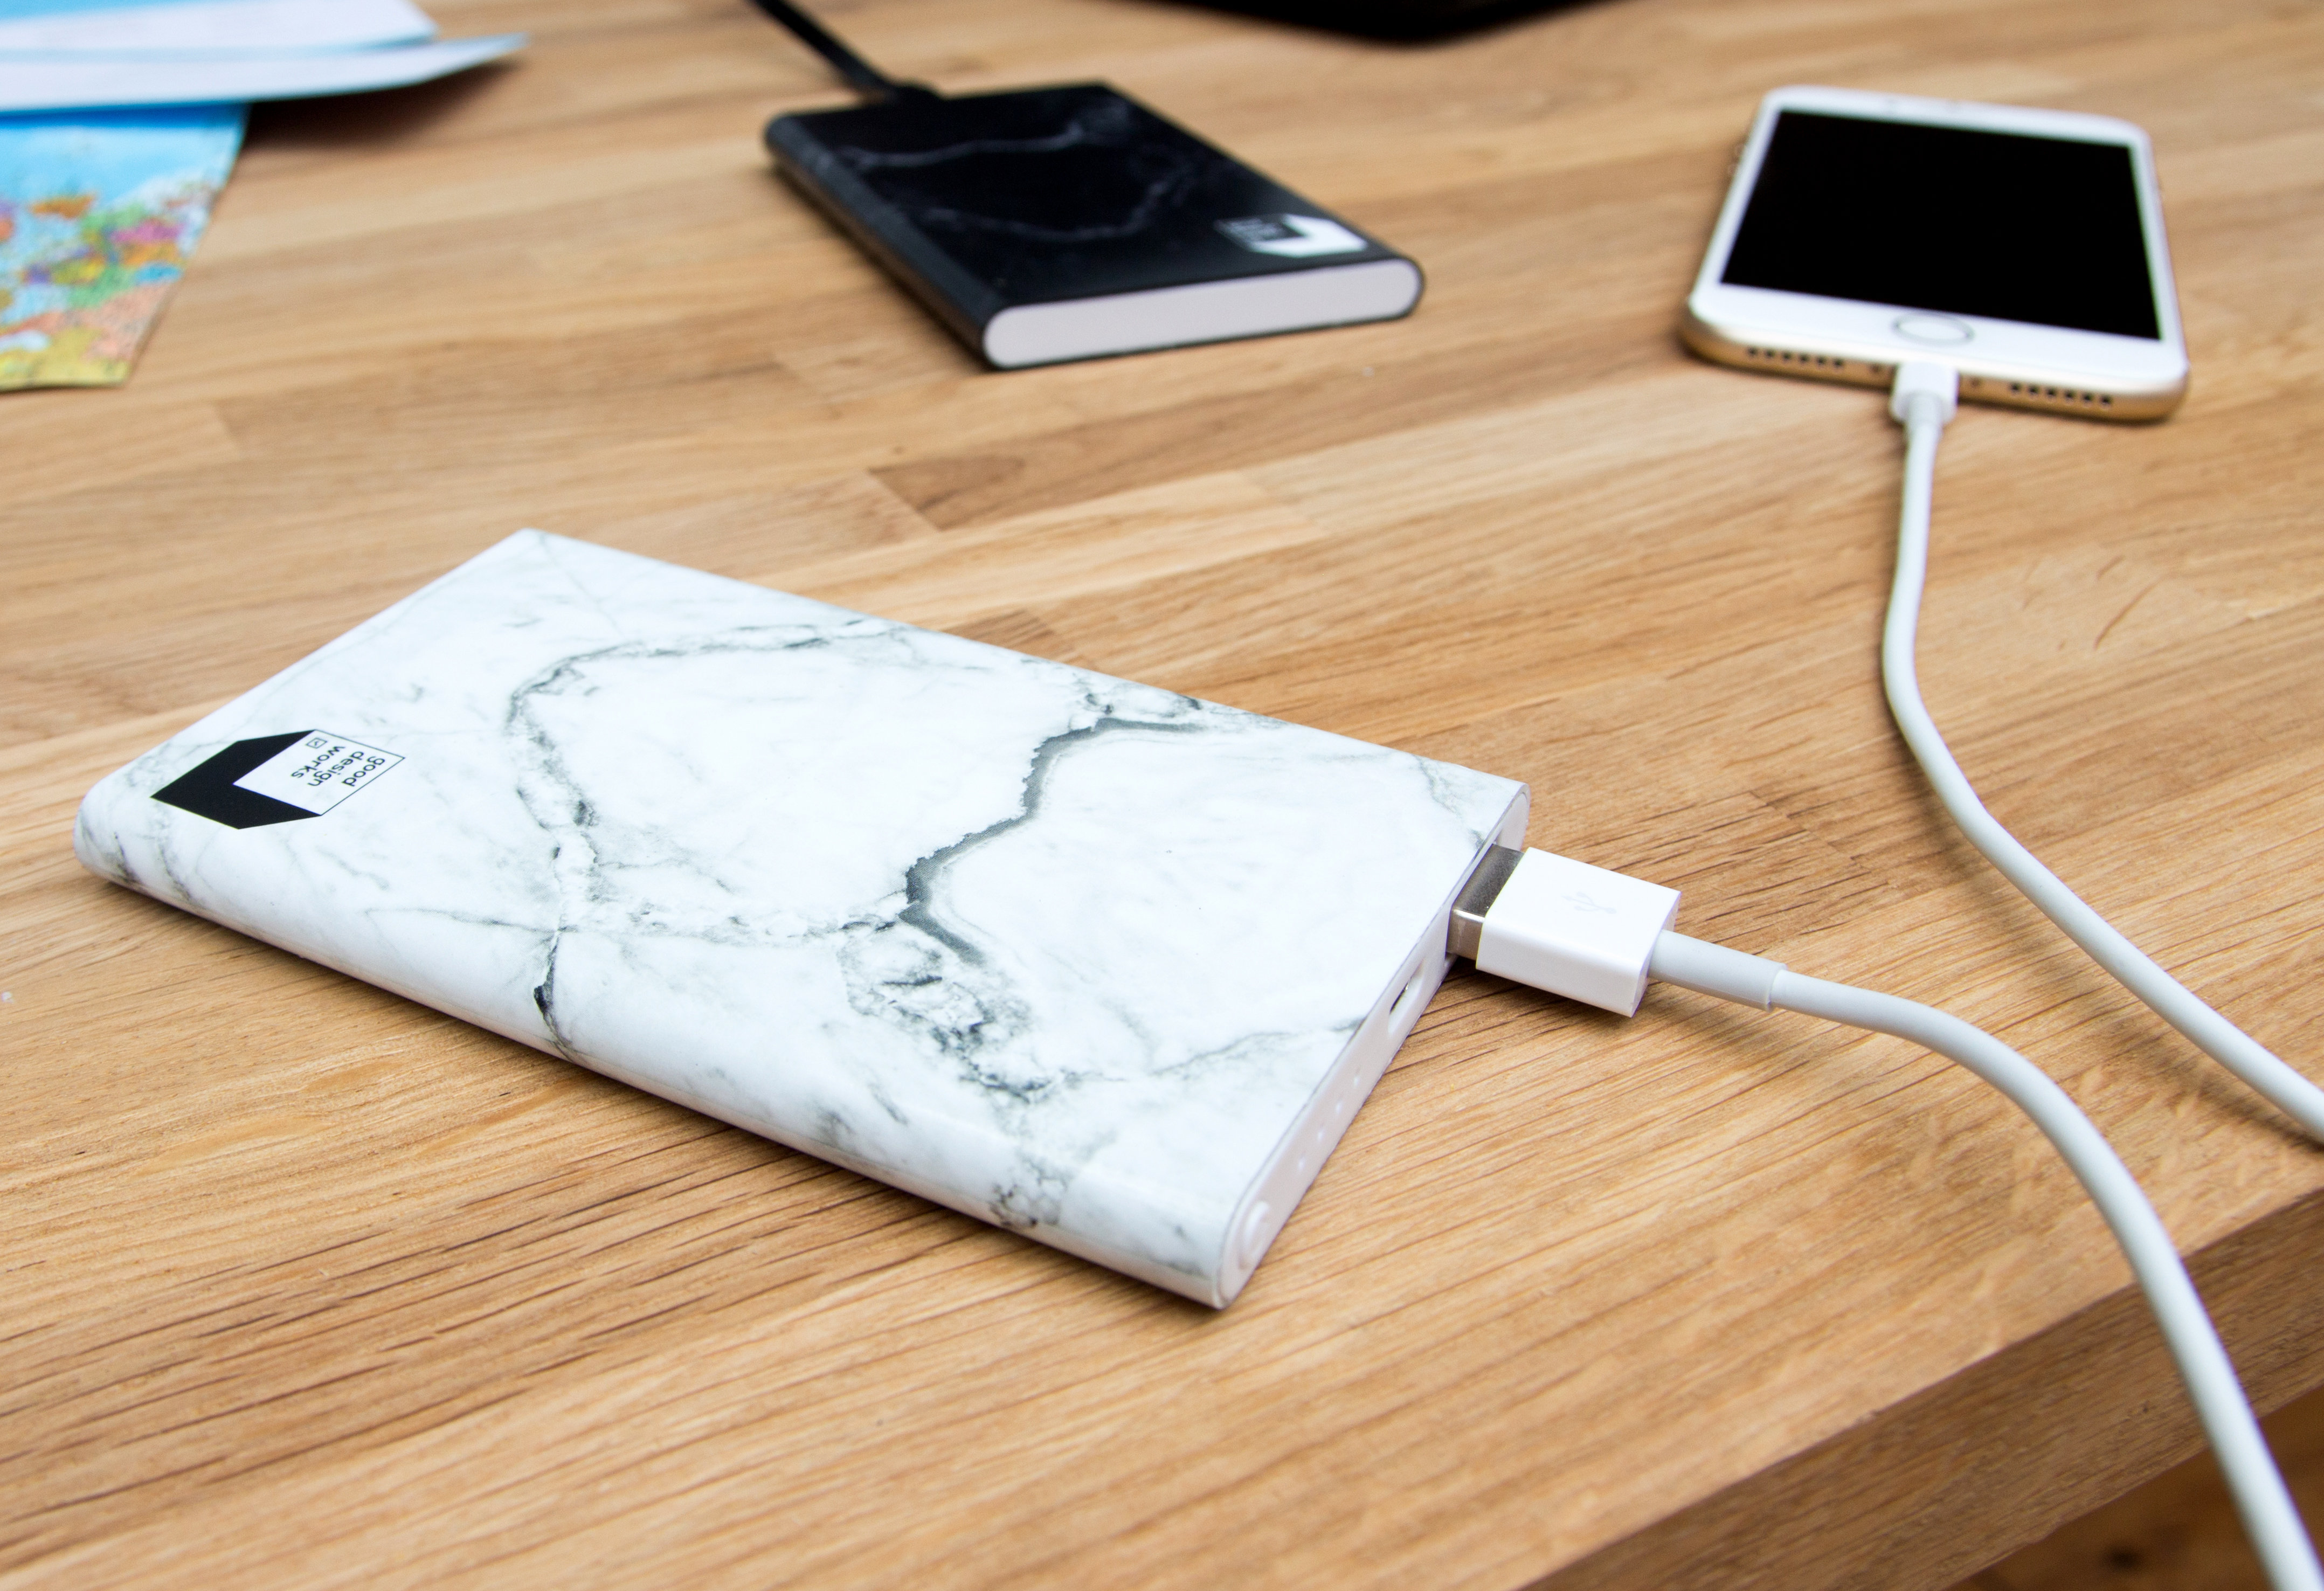 Marble Power Bank Content Gallery A Portable Charger With Touch Uk Wiring Colours Grey Permission Is Given For The Reproduction And Re Use Of Images Provided In This Image Purpose Promoting Suck Products